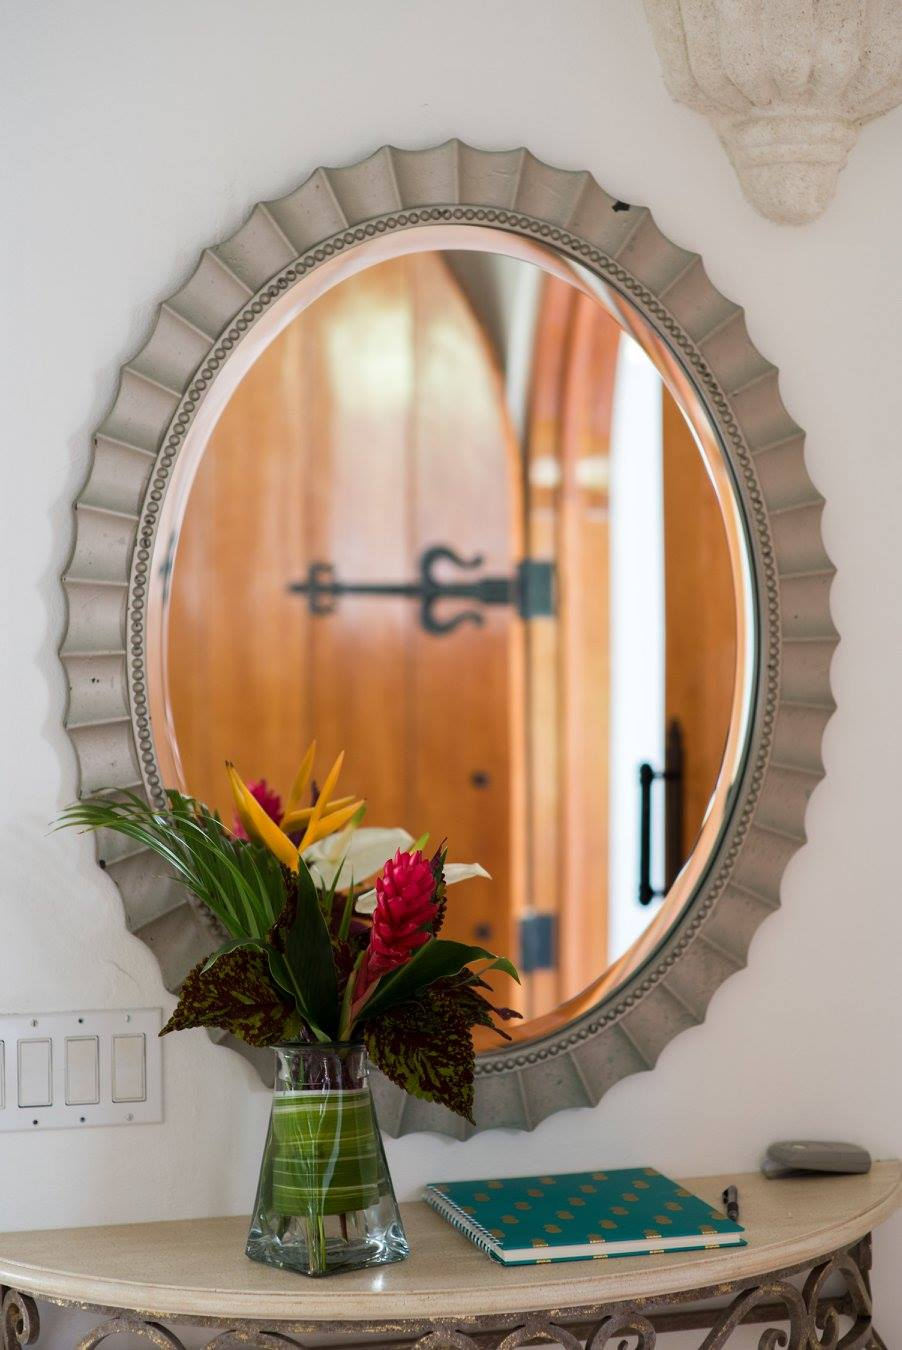 mirror inside a house for rent in Barbados